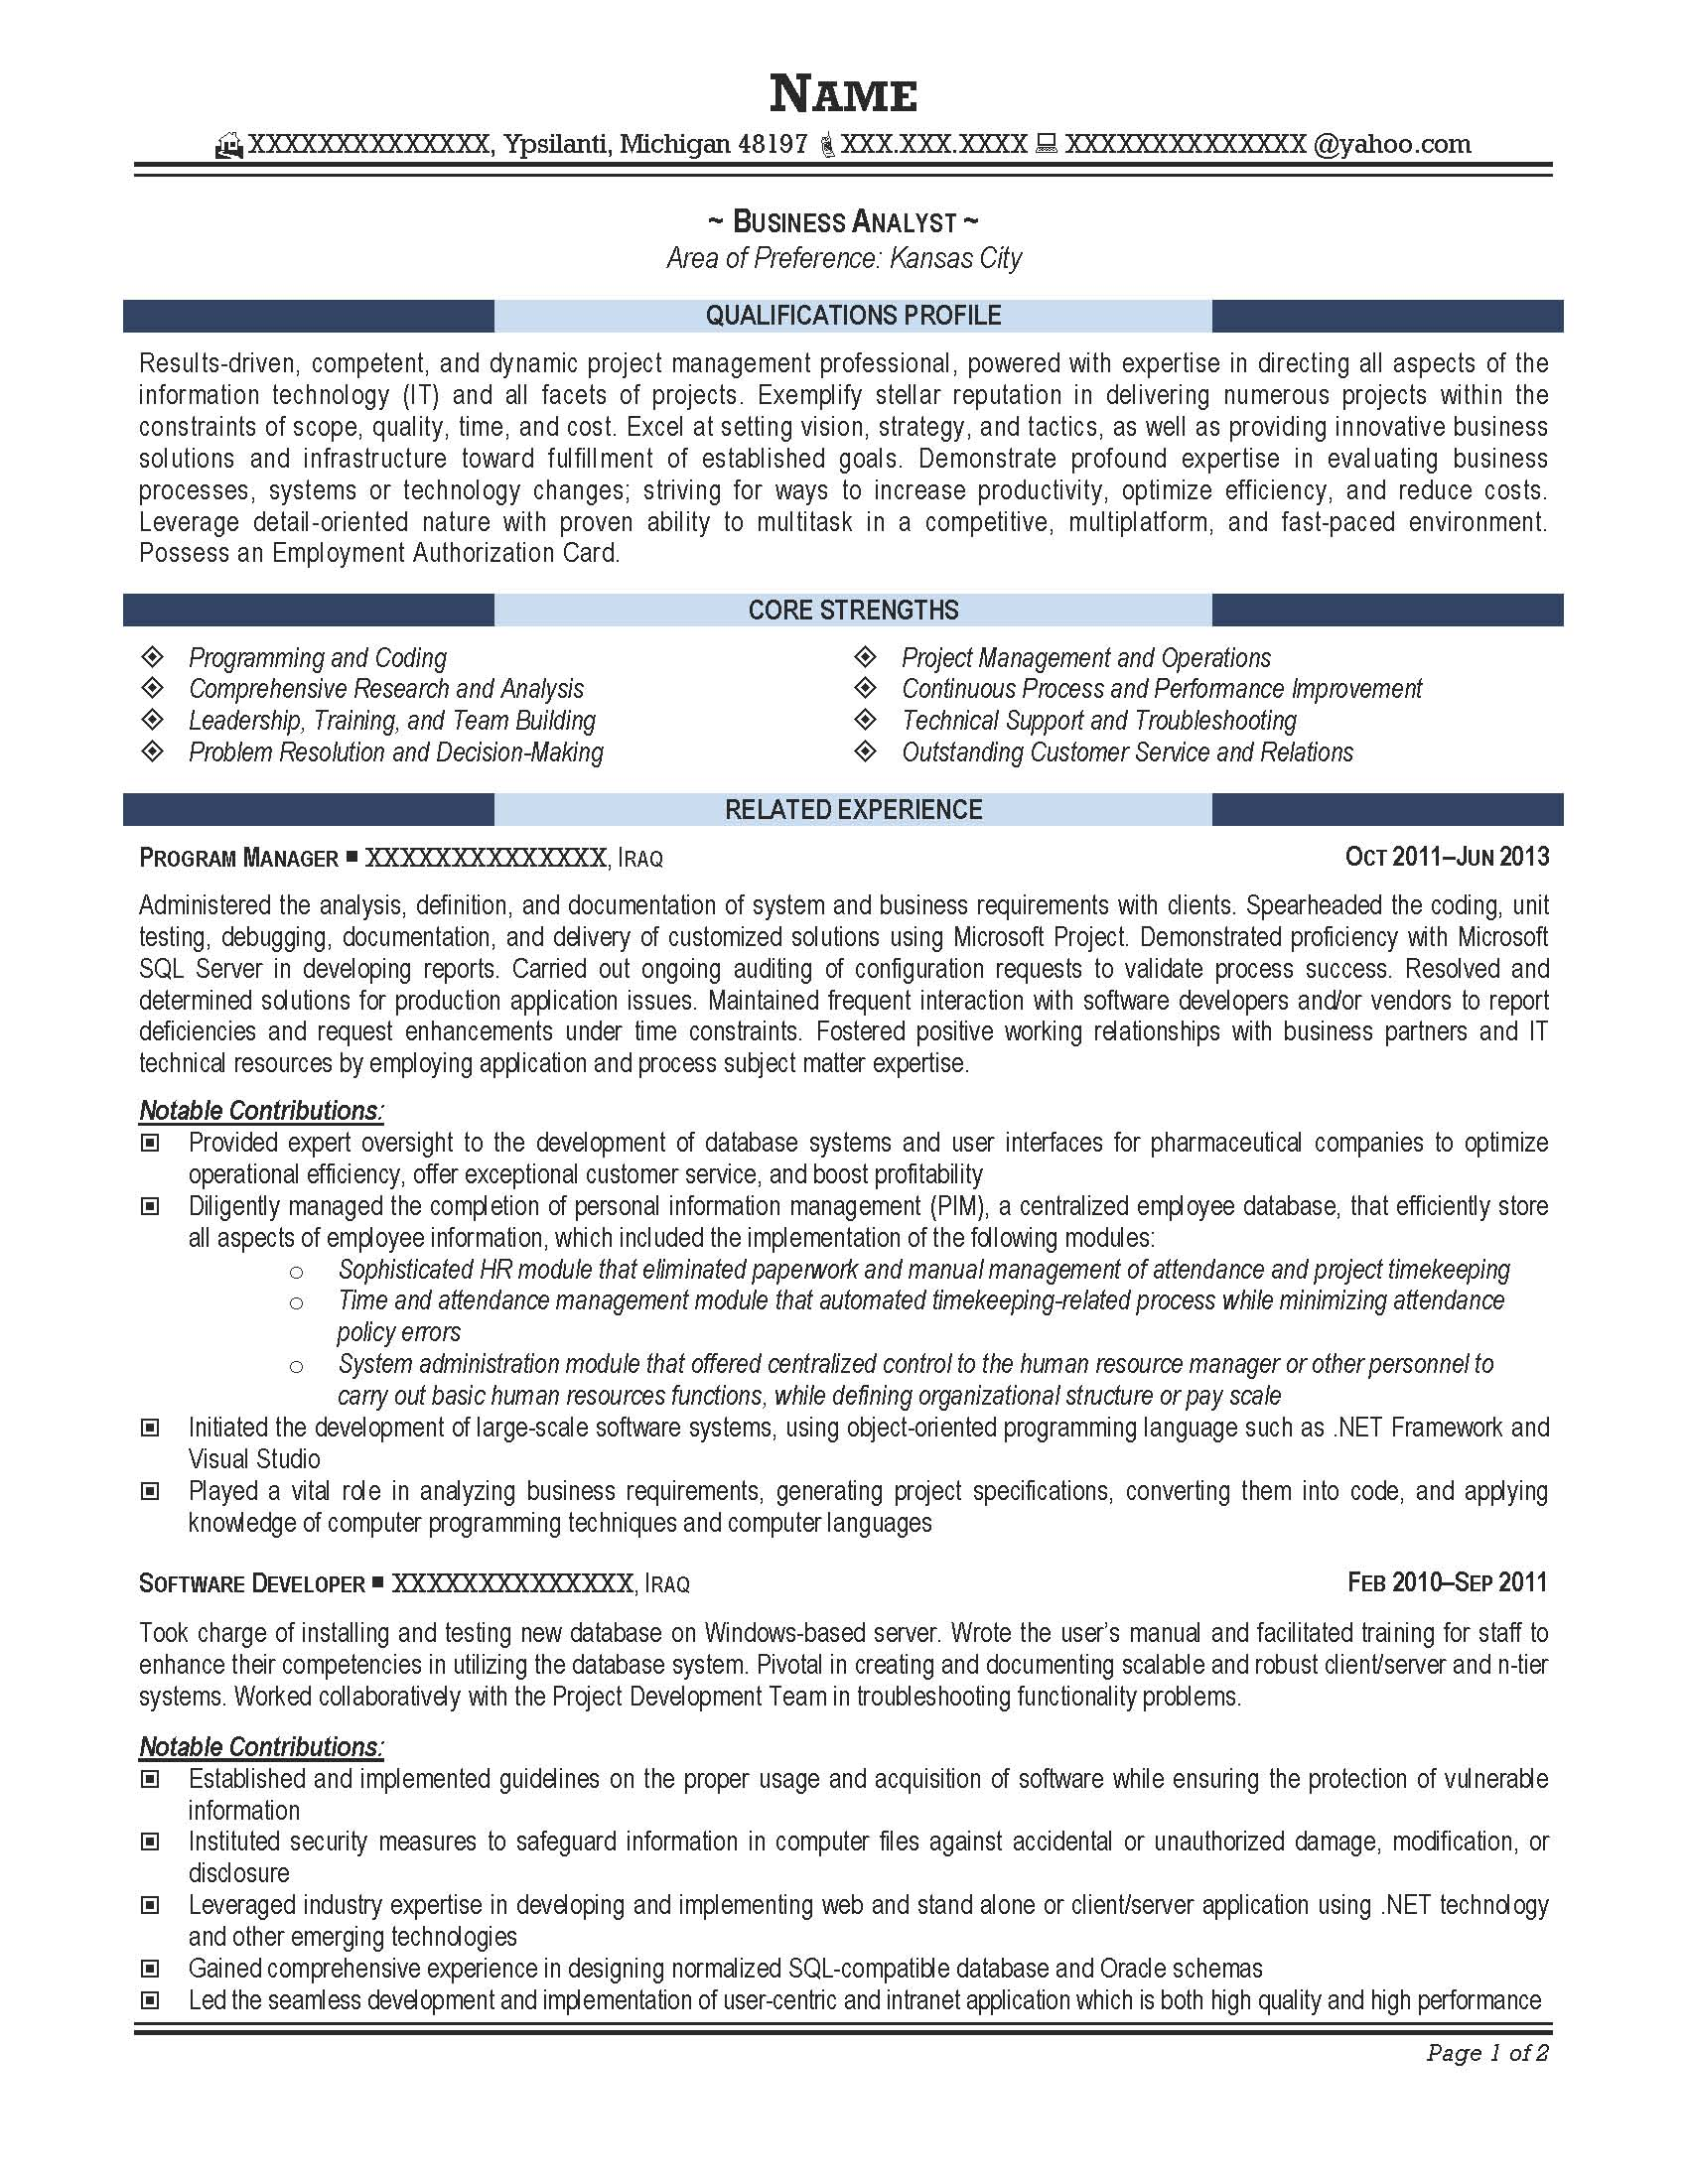 Professional Examples Of Resumes Professional Resume Samples Resume Prime